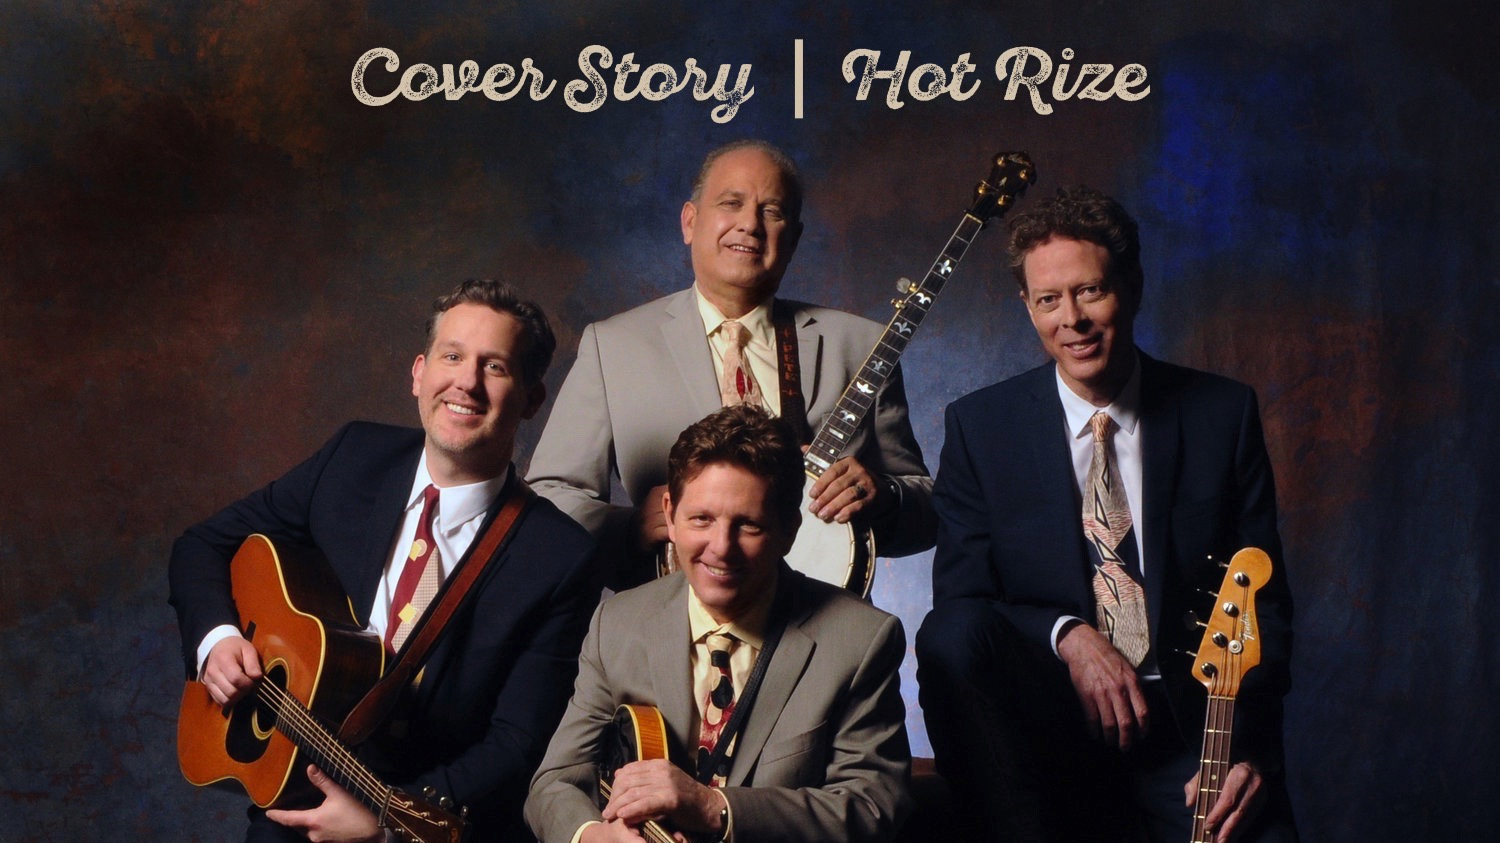 Hot Rize Turns 40: Nick Forster and Tim O'Brien Look Back